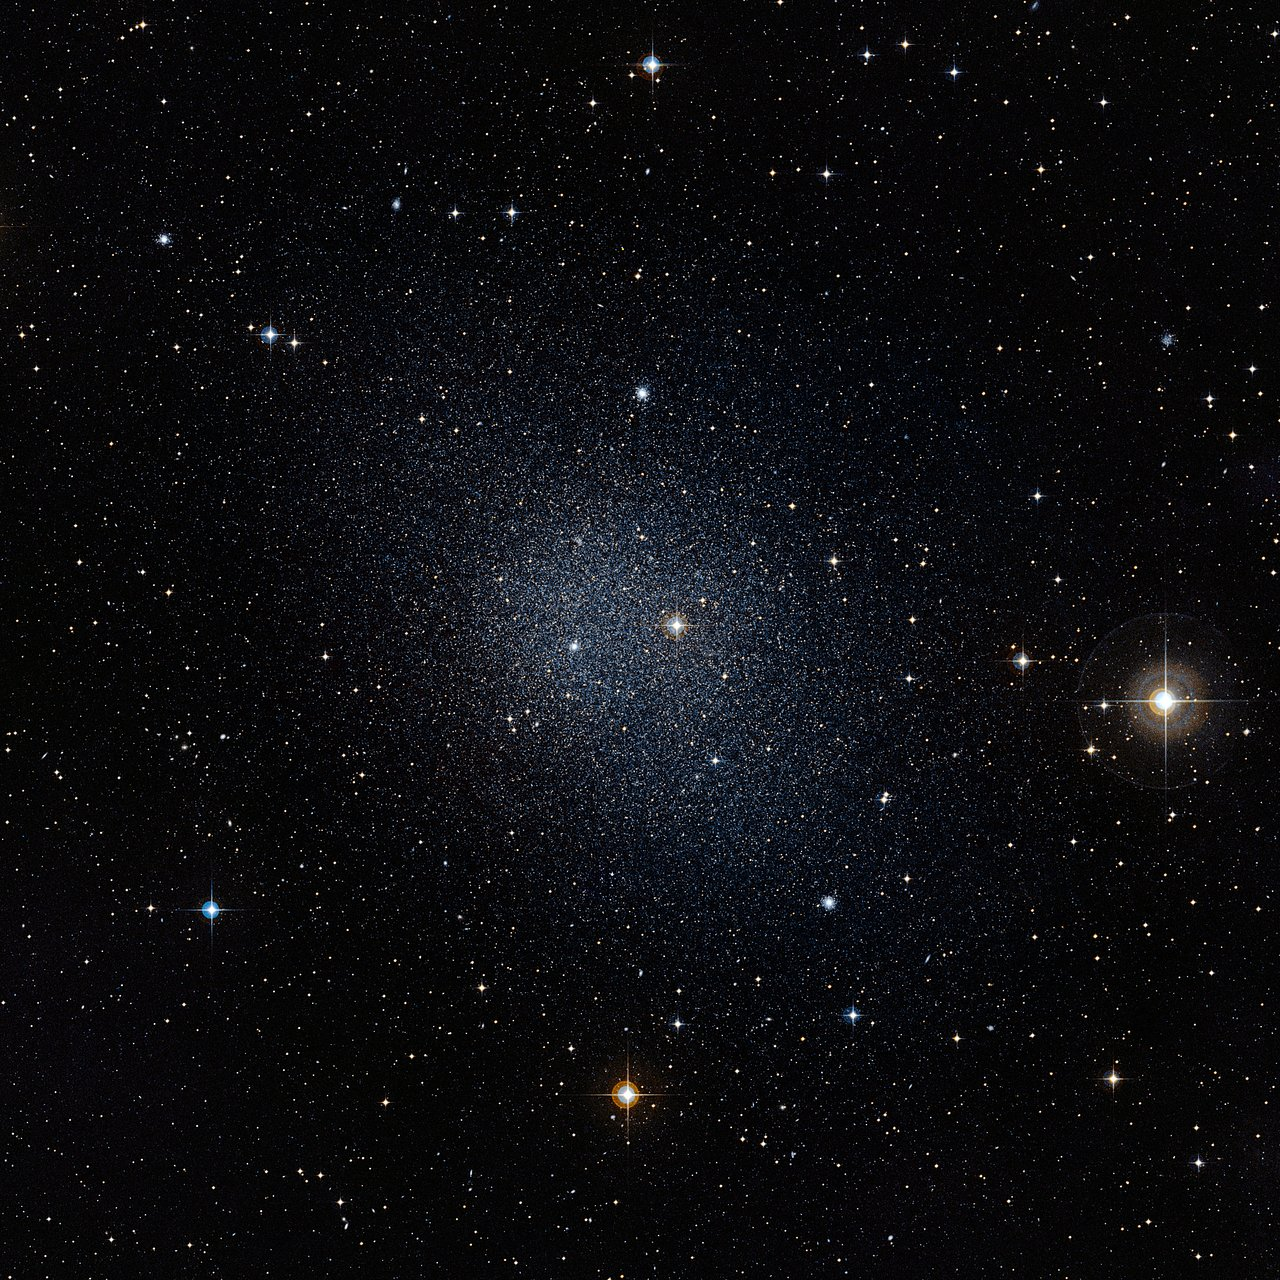 http://www.eso.org/public/archives/images/screen/eso1007a.jpg